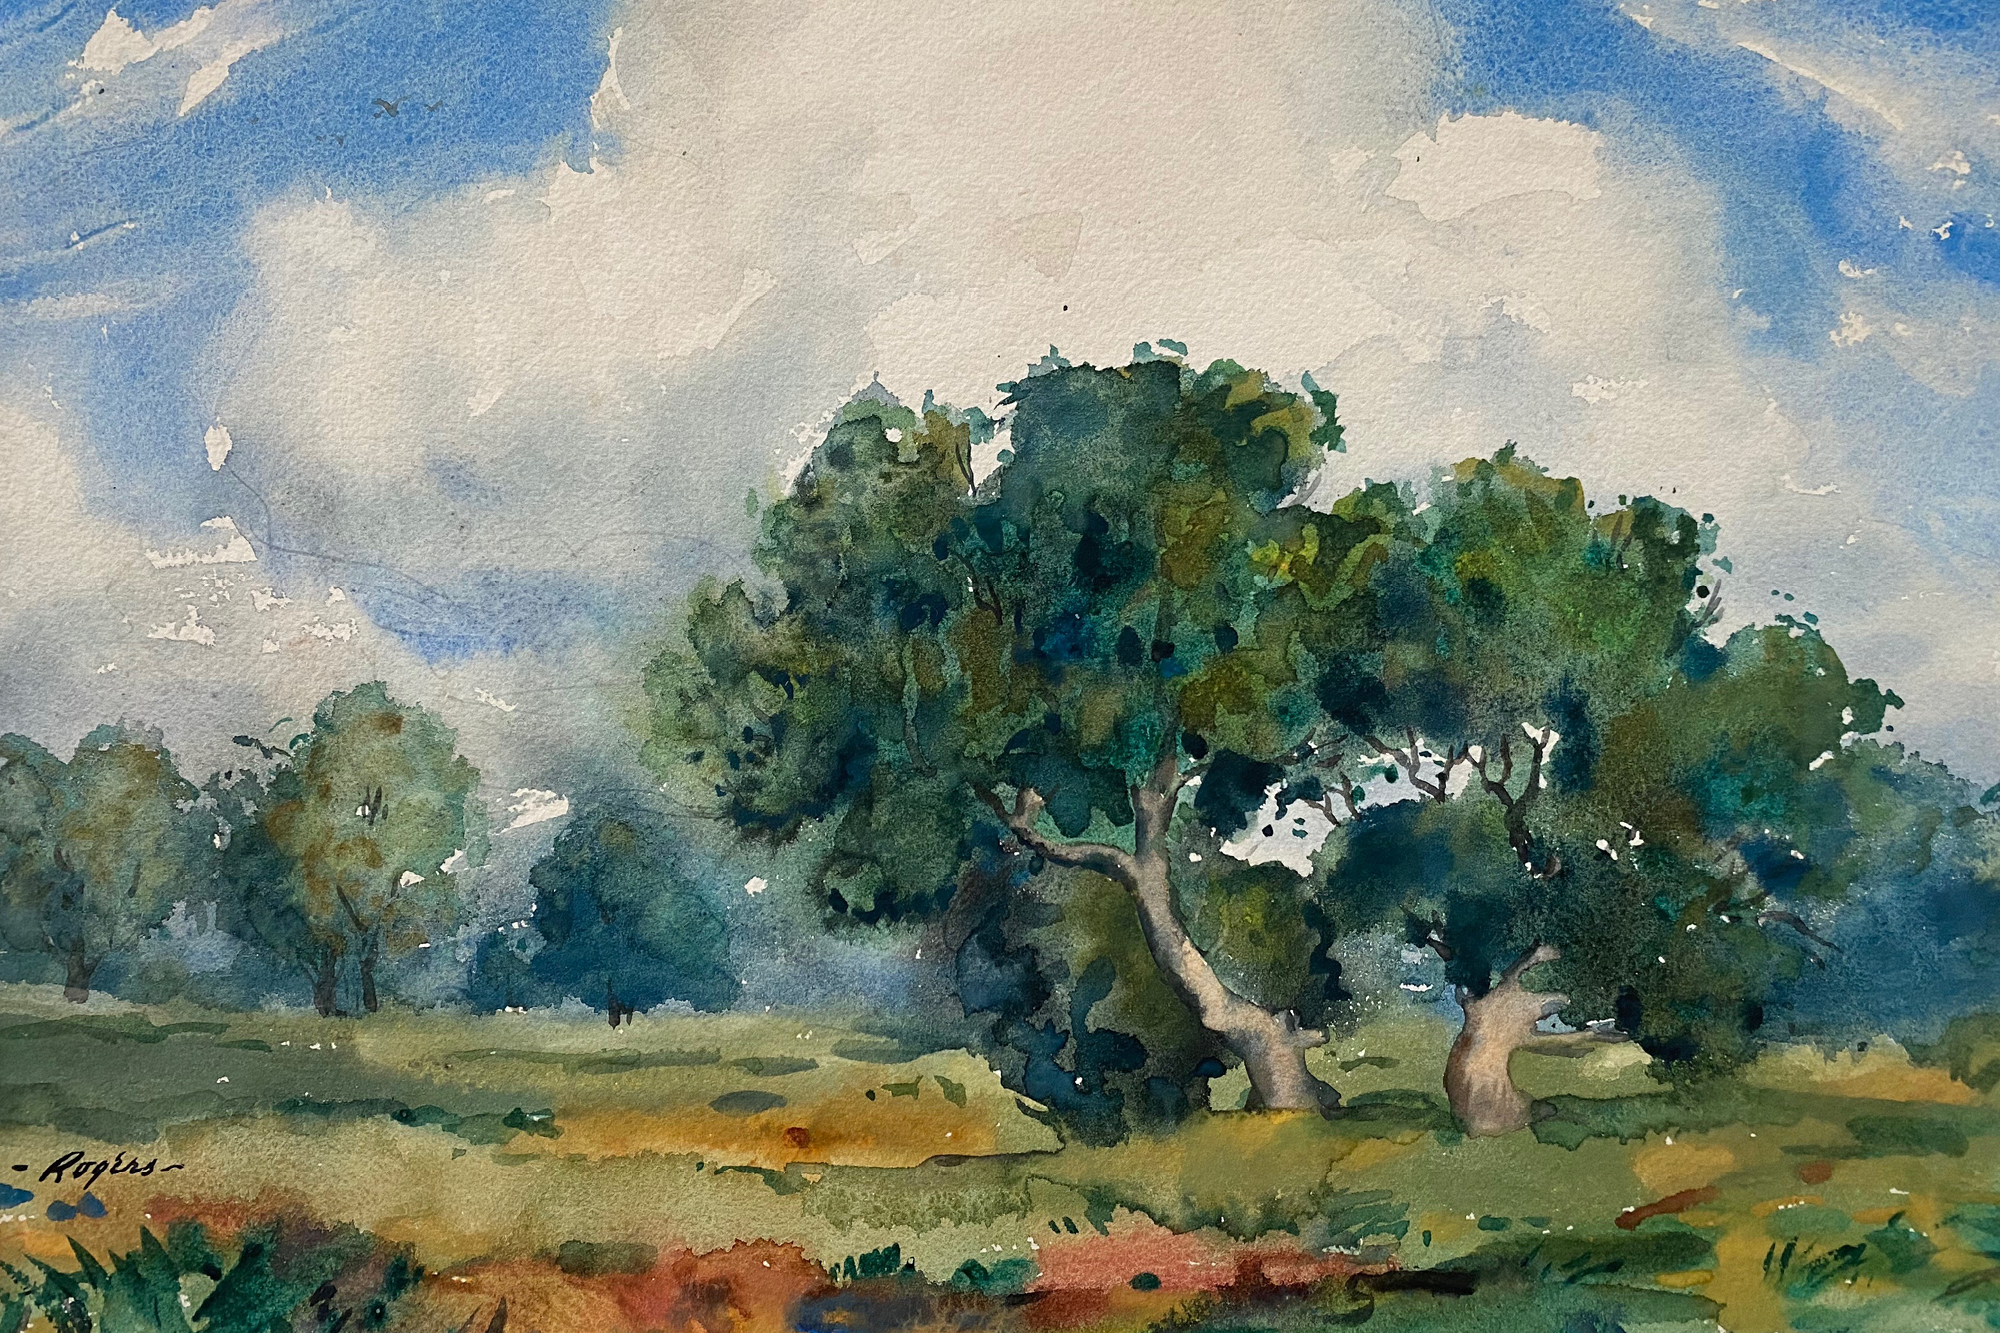 A photo of a painting of trees and clouds.